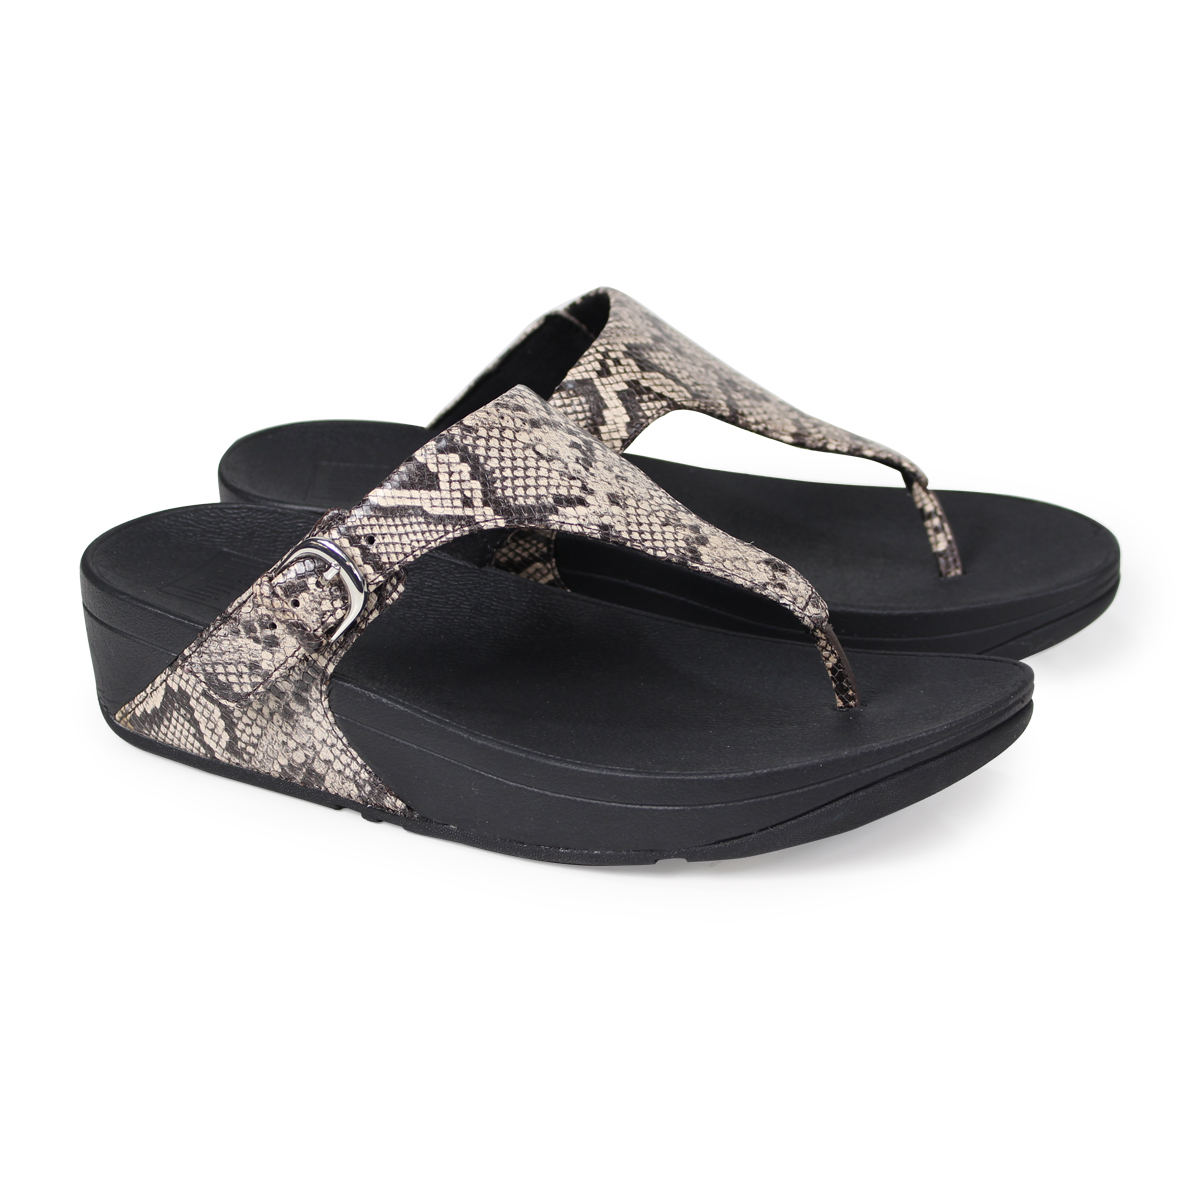 3e1f10953447 ALLSPORTS  FitFlop SKINNY TOE-THONG SANDALS SNAKE PRINT LEATHER ...